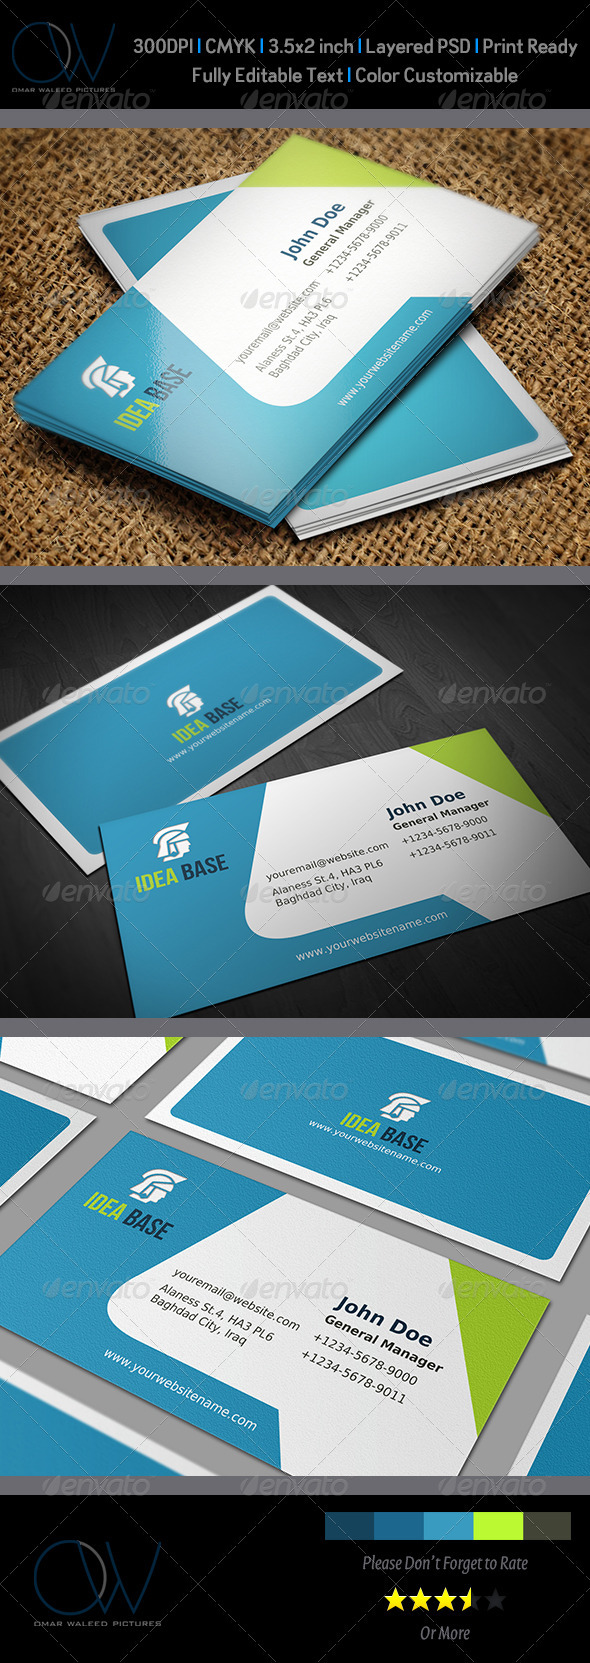 Corporate Business Card Vol.12 - Corporate Business Cards